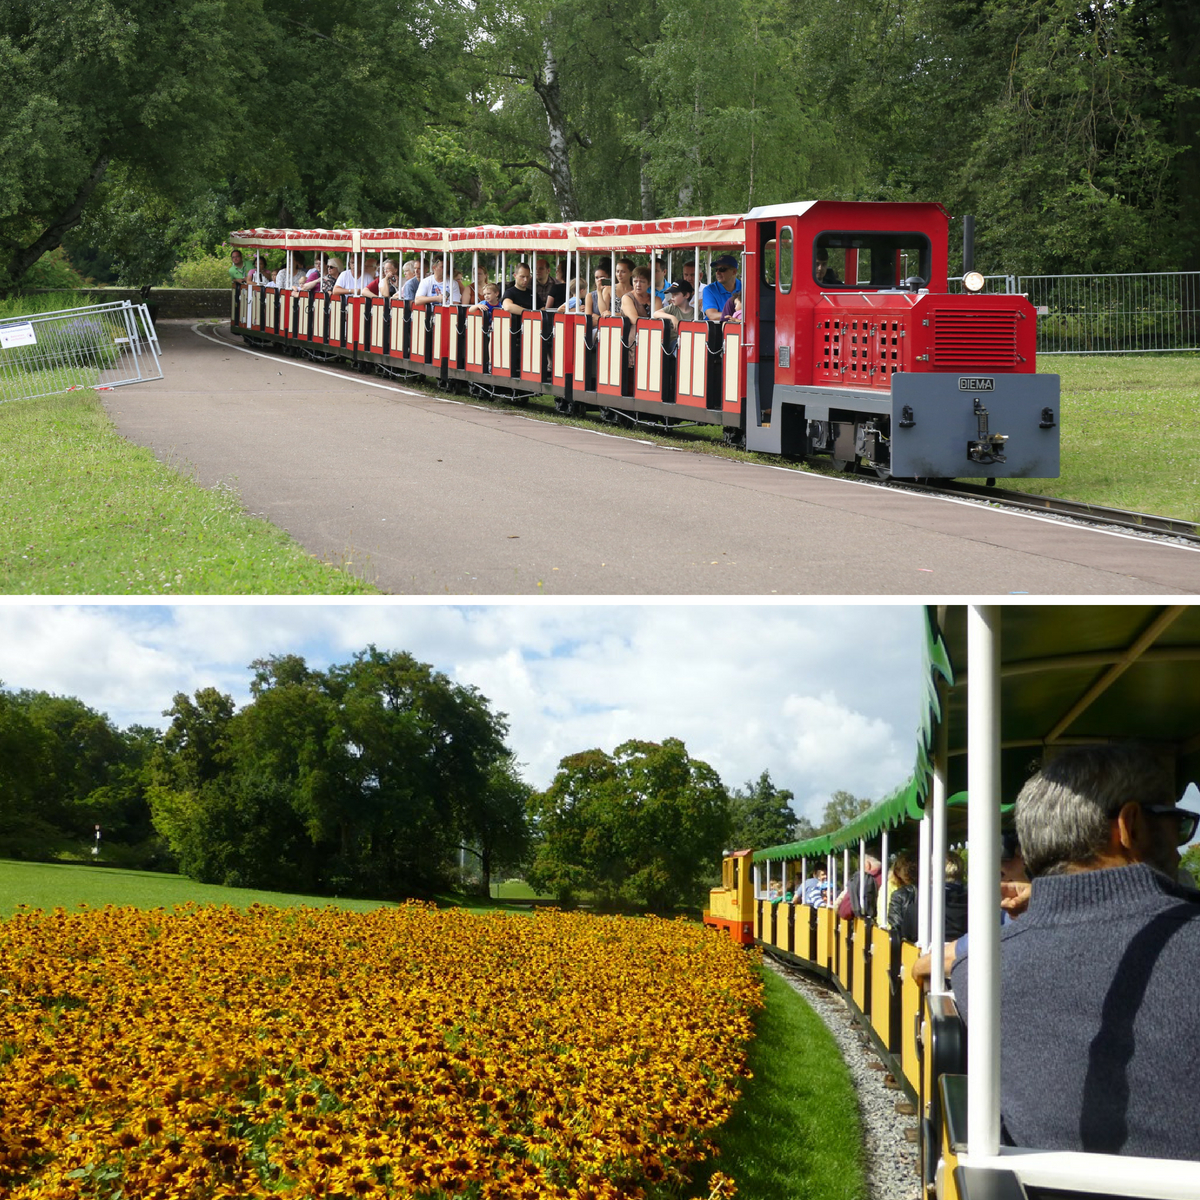 Taking the mini train through Höhenpark Killesberg is fun for the whole family.